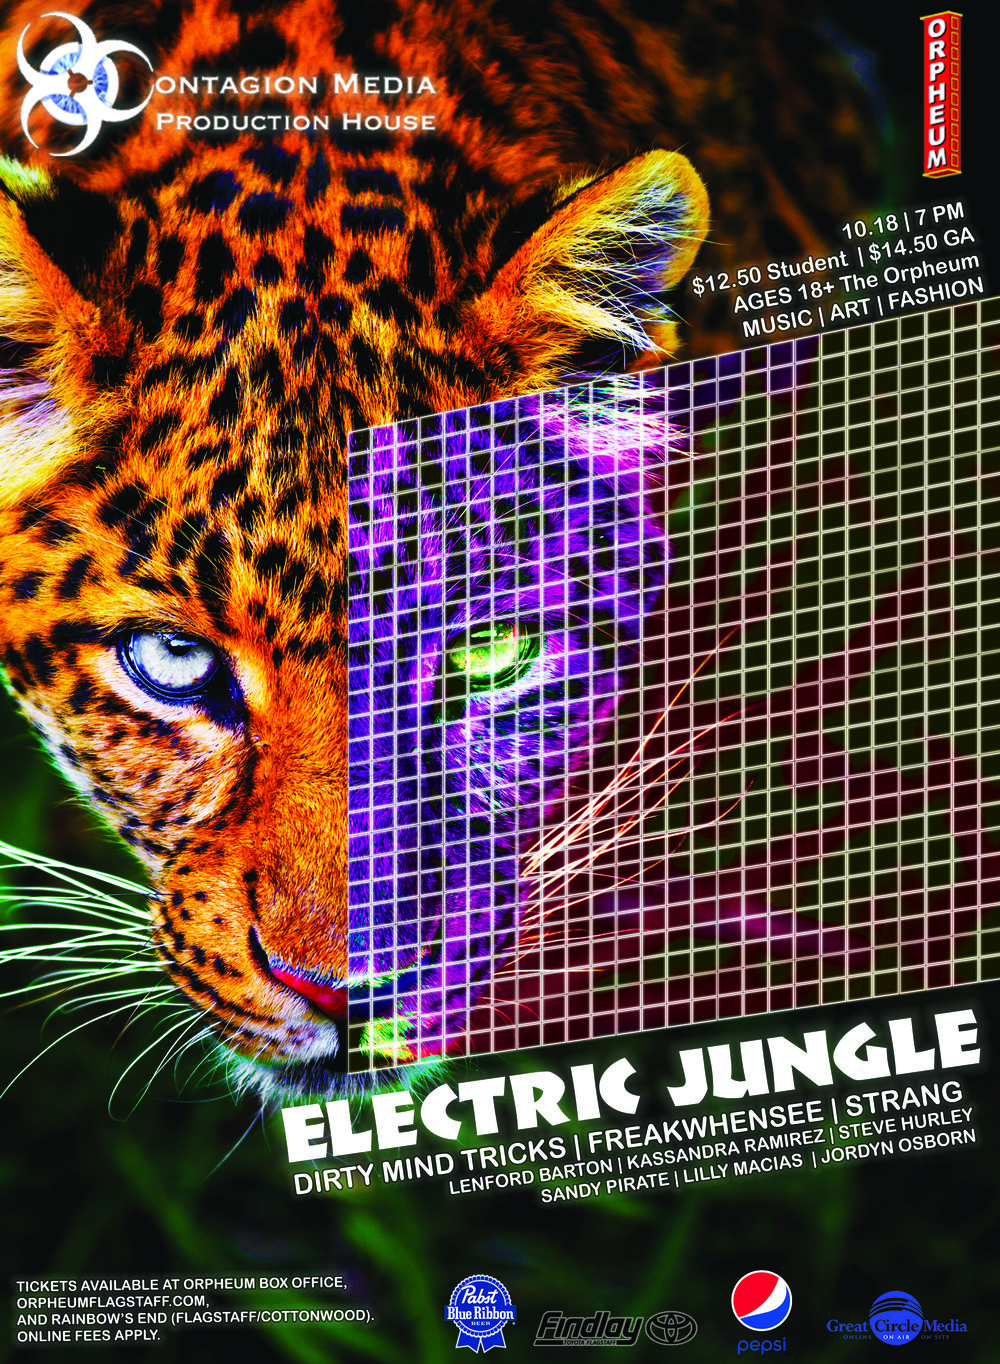 Electric Jungle Official Poster - Design by Hannah Rose